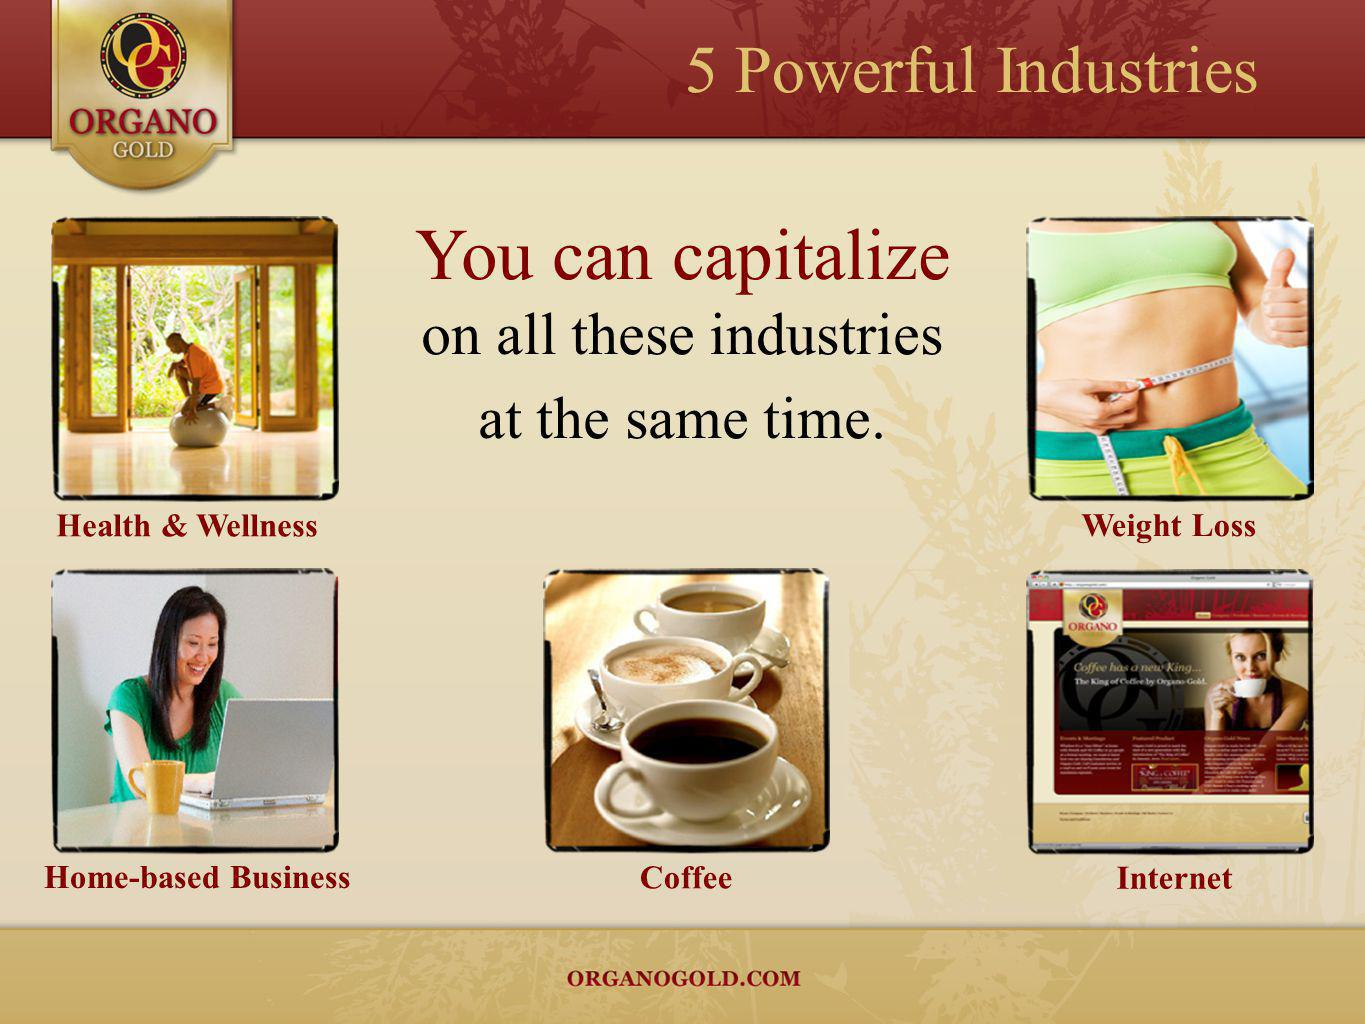 You can capitalize on all these industries